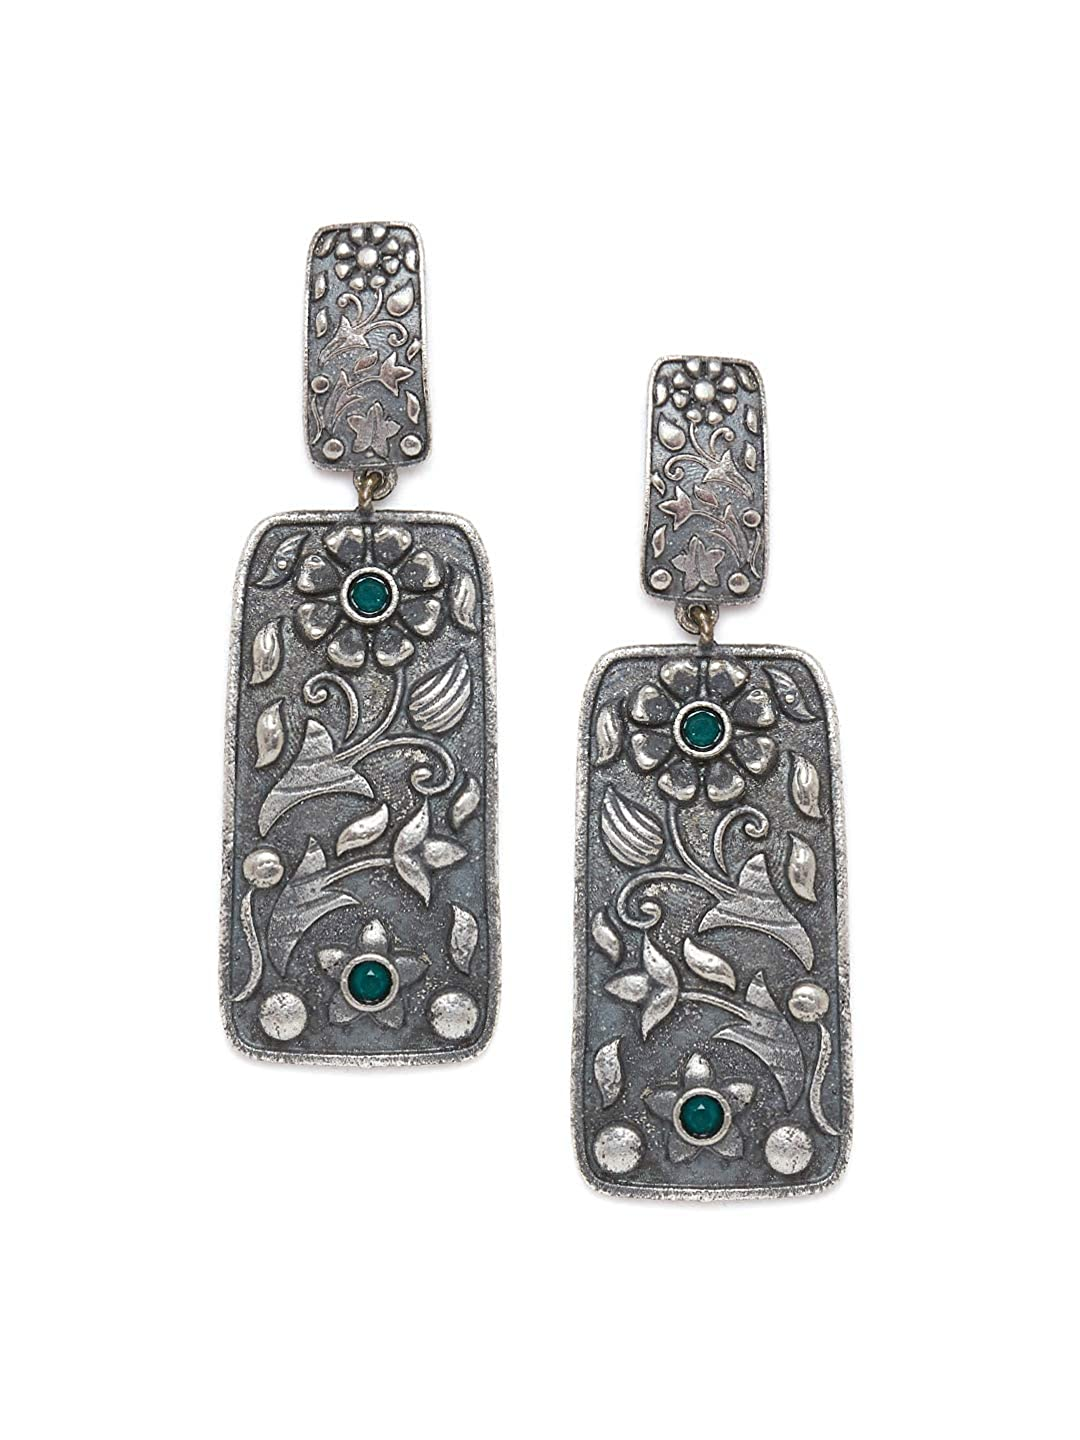 ZeroKaata/ Fashion Jewellery Geometrical Brass Based Silver Plated Earrings With Floral Motifs For Women /& Girls